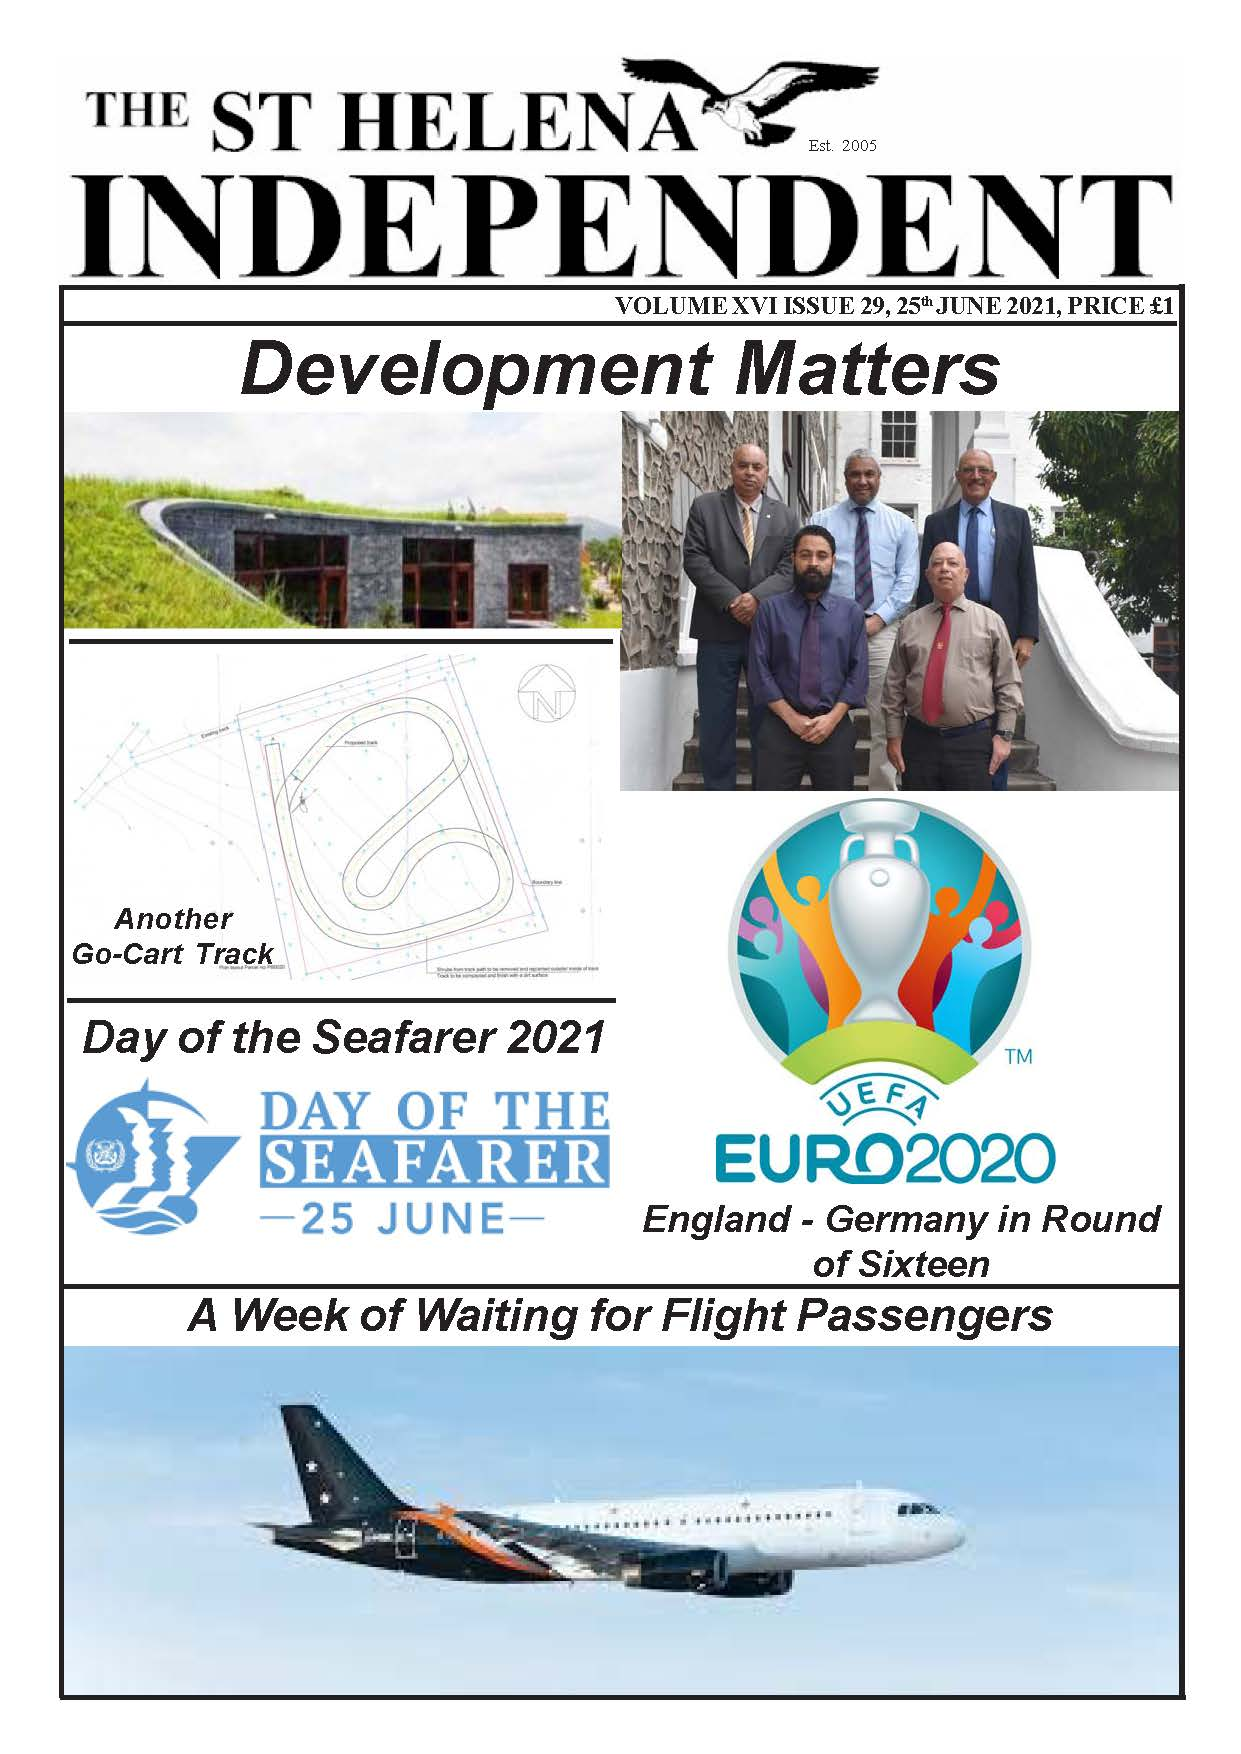 St Helena Independent 20210625 page 1